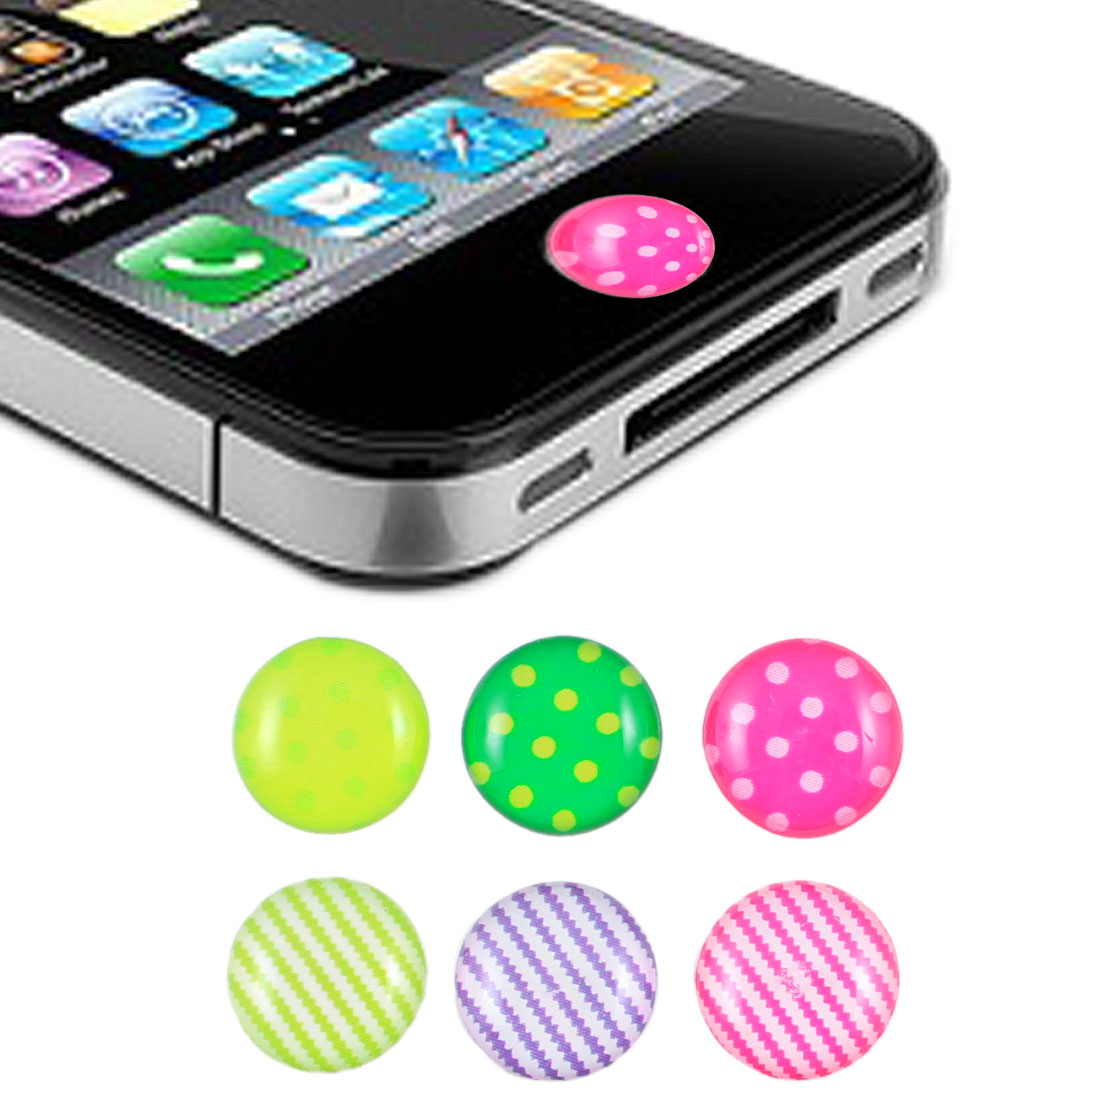 Striped Dotted Home Button Sticker 6 Pcs for iPhone iPad iTouch